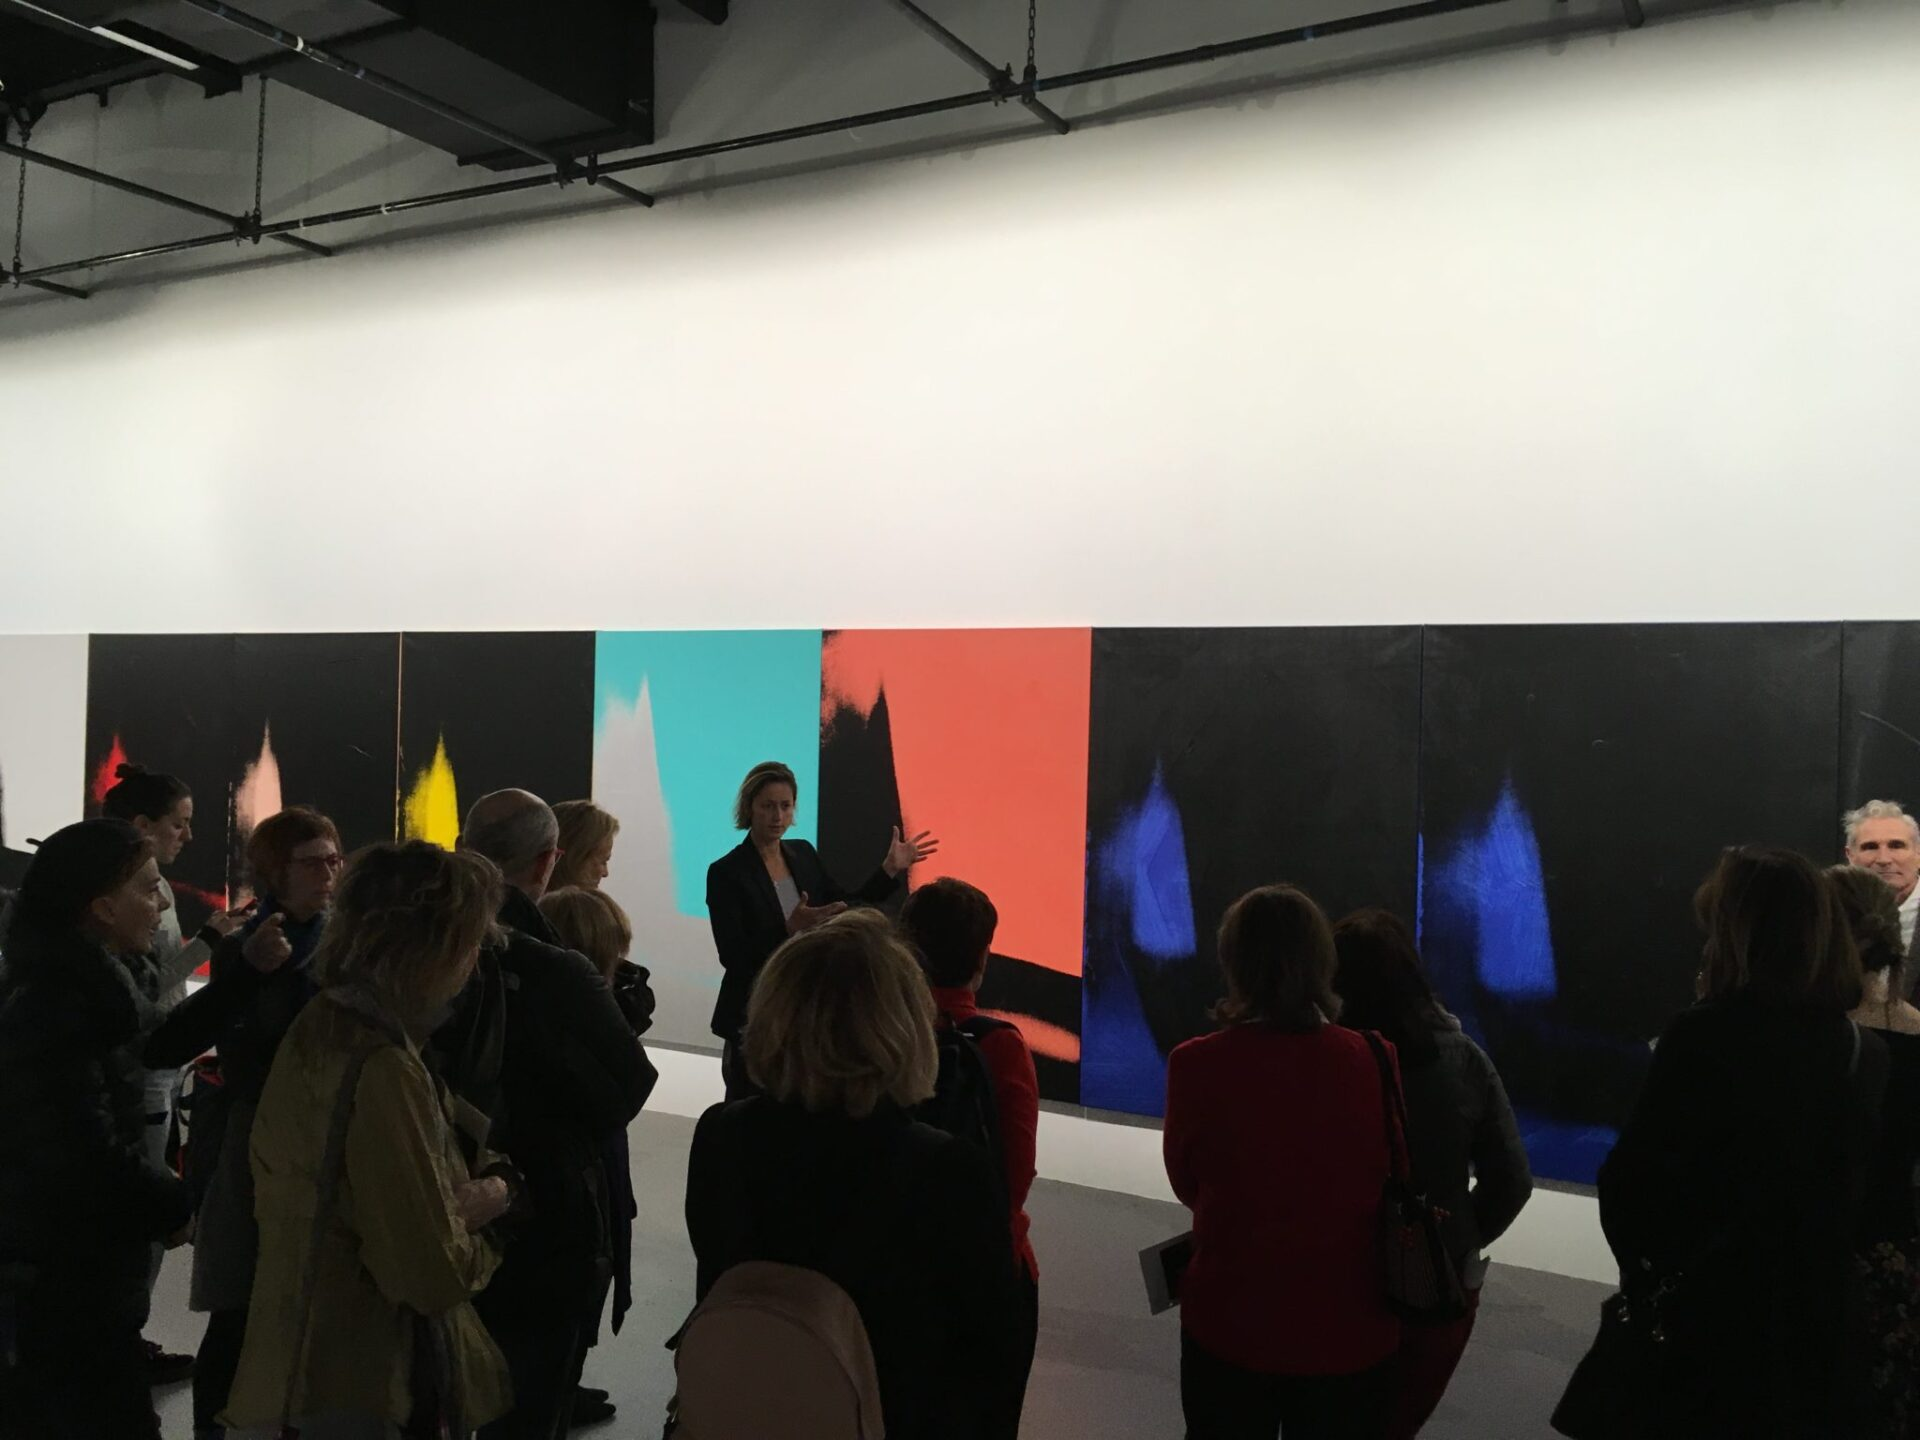 A tour of Andy Warhol's 'Shadows' with Neil Printz and Jessica